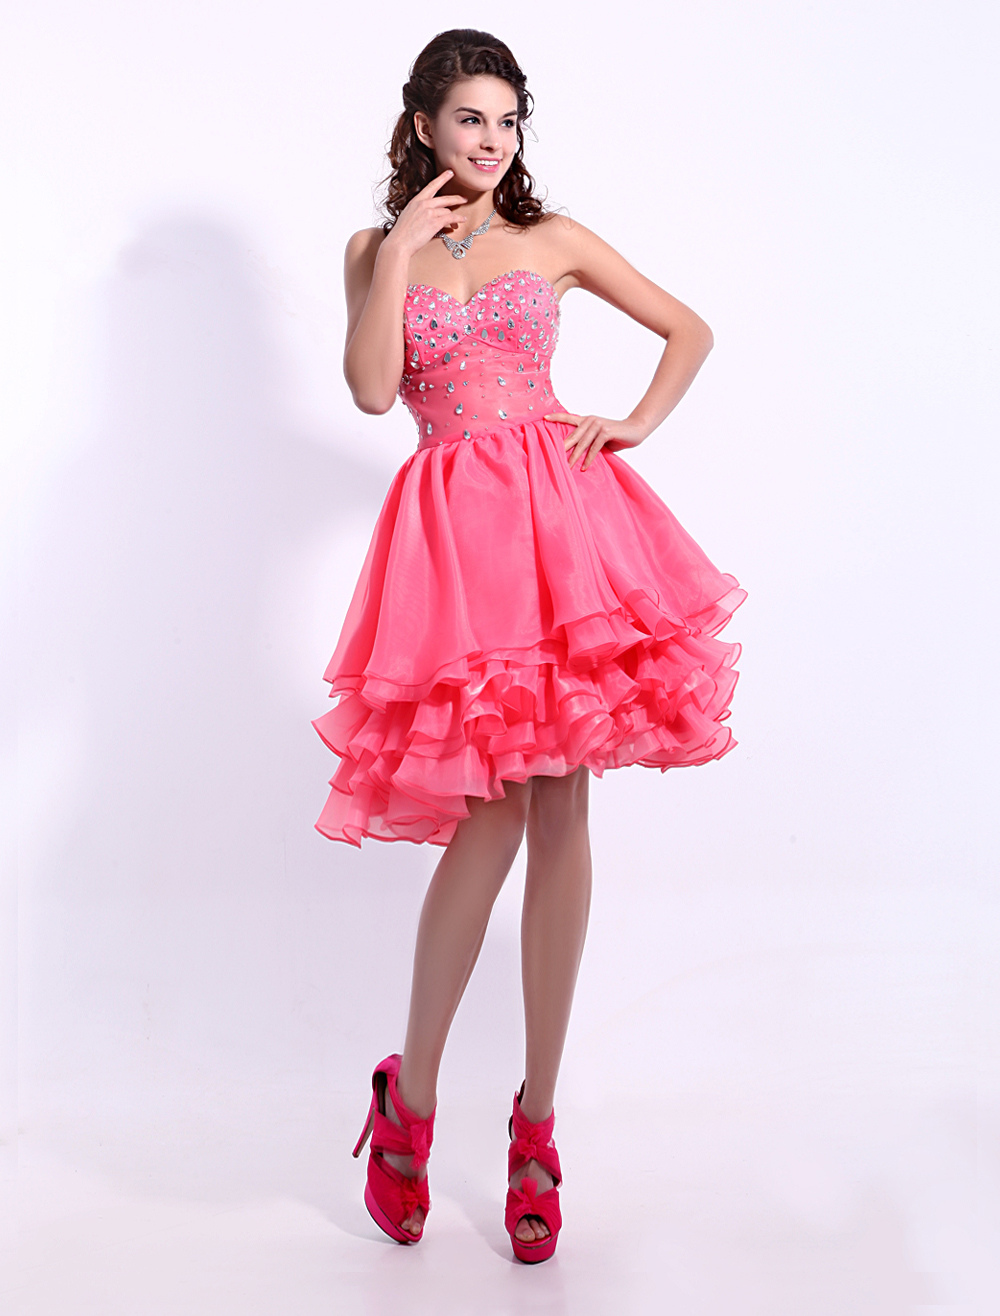 4041fcde817 Candy Pink Sweetheart Homecoming Dress with Tiered Skirt - Milanoo.com